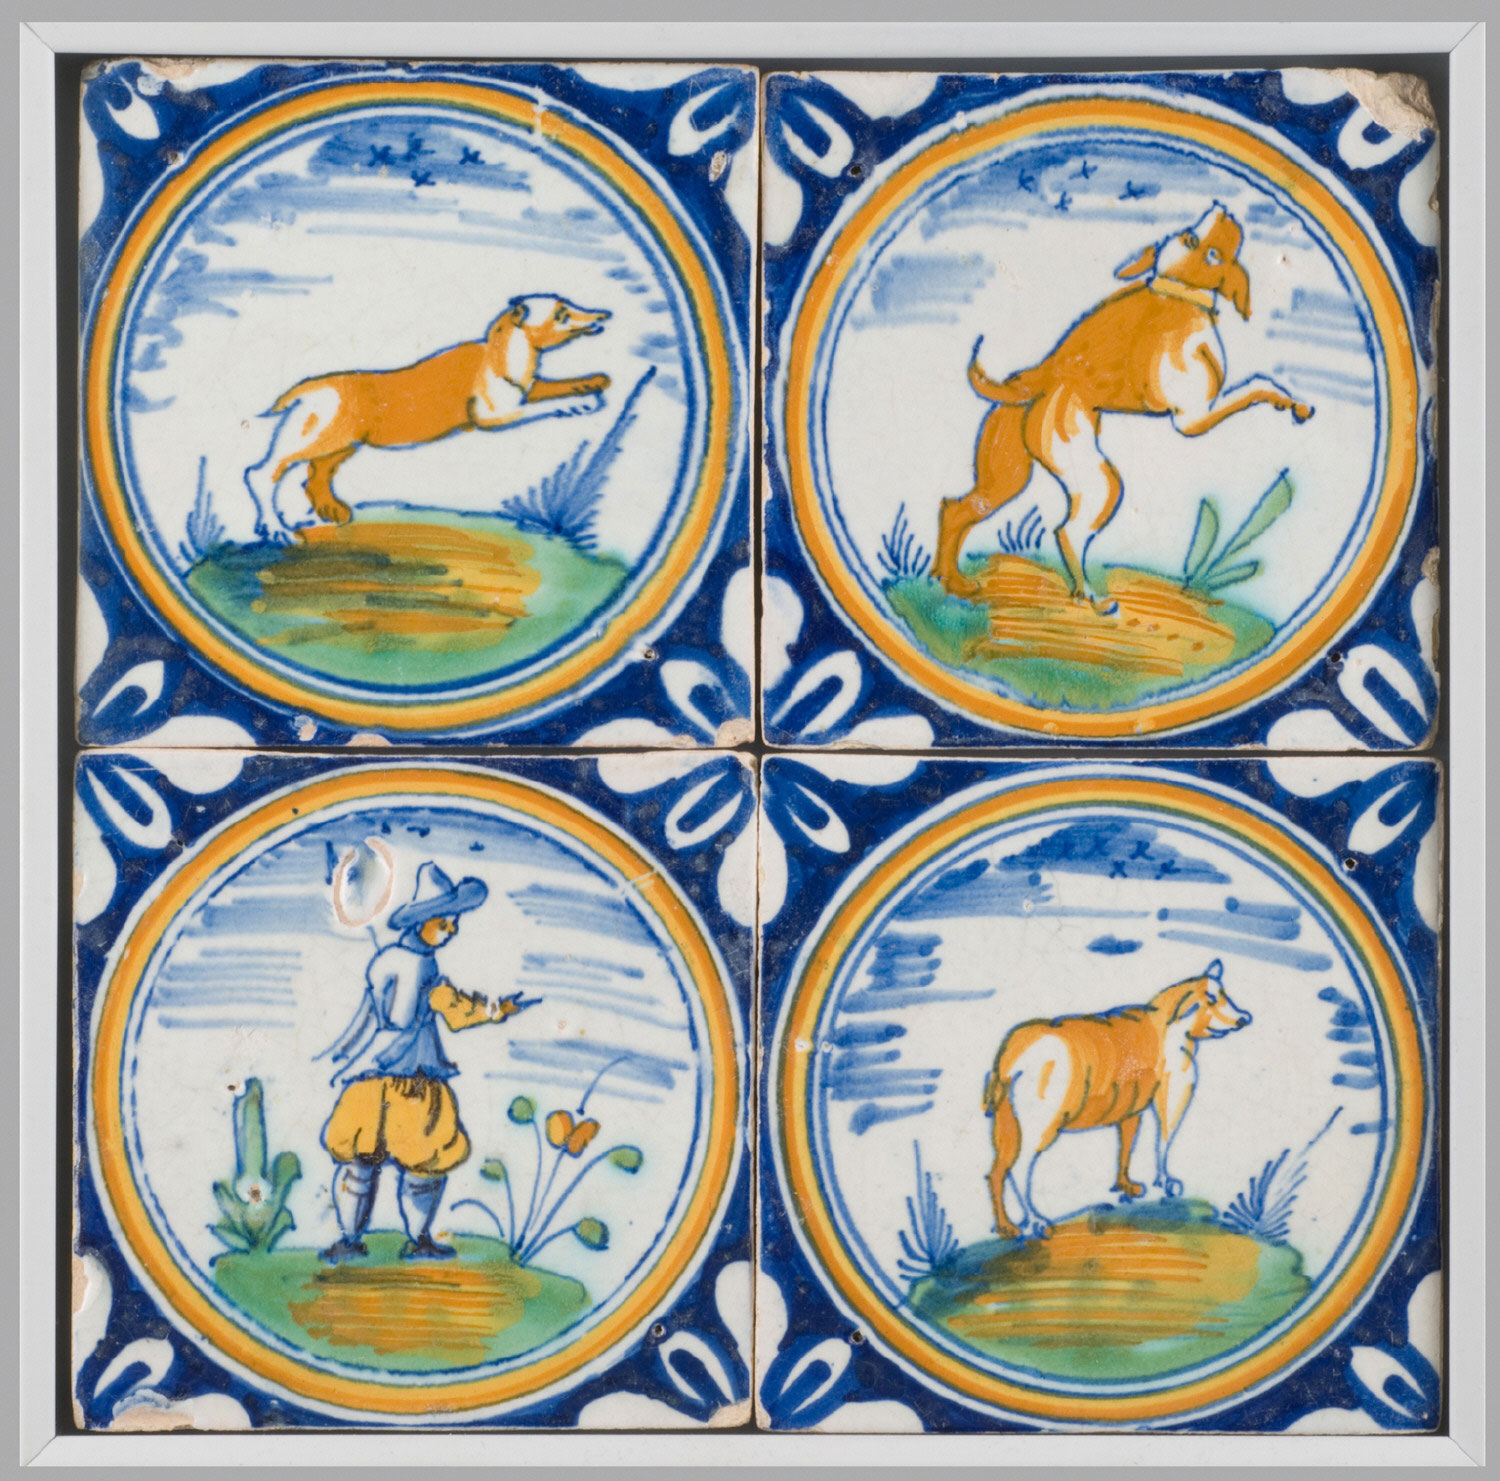 Animals and Hunter in Roundels